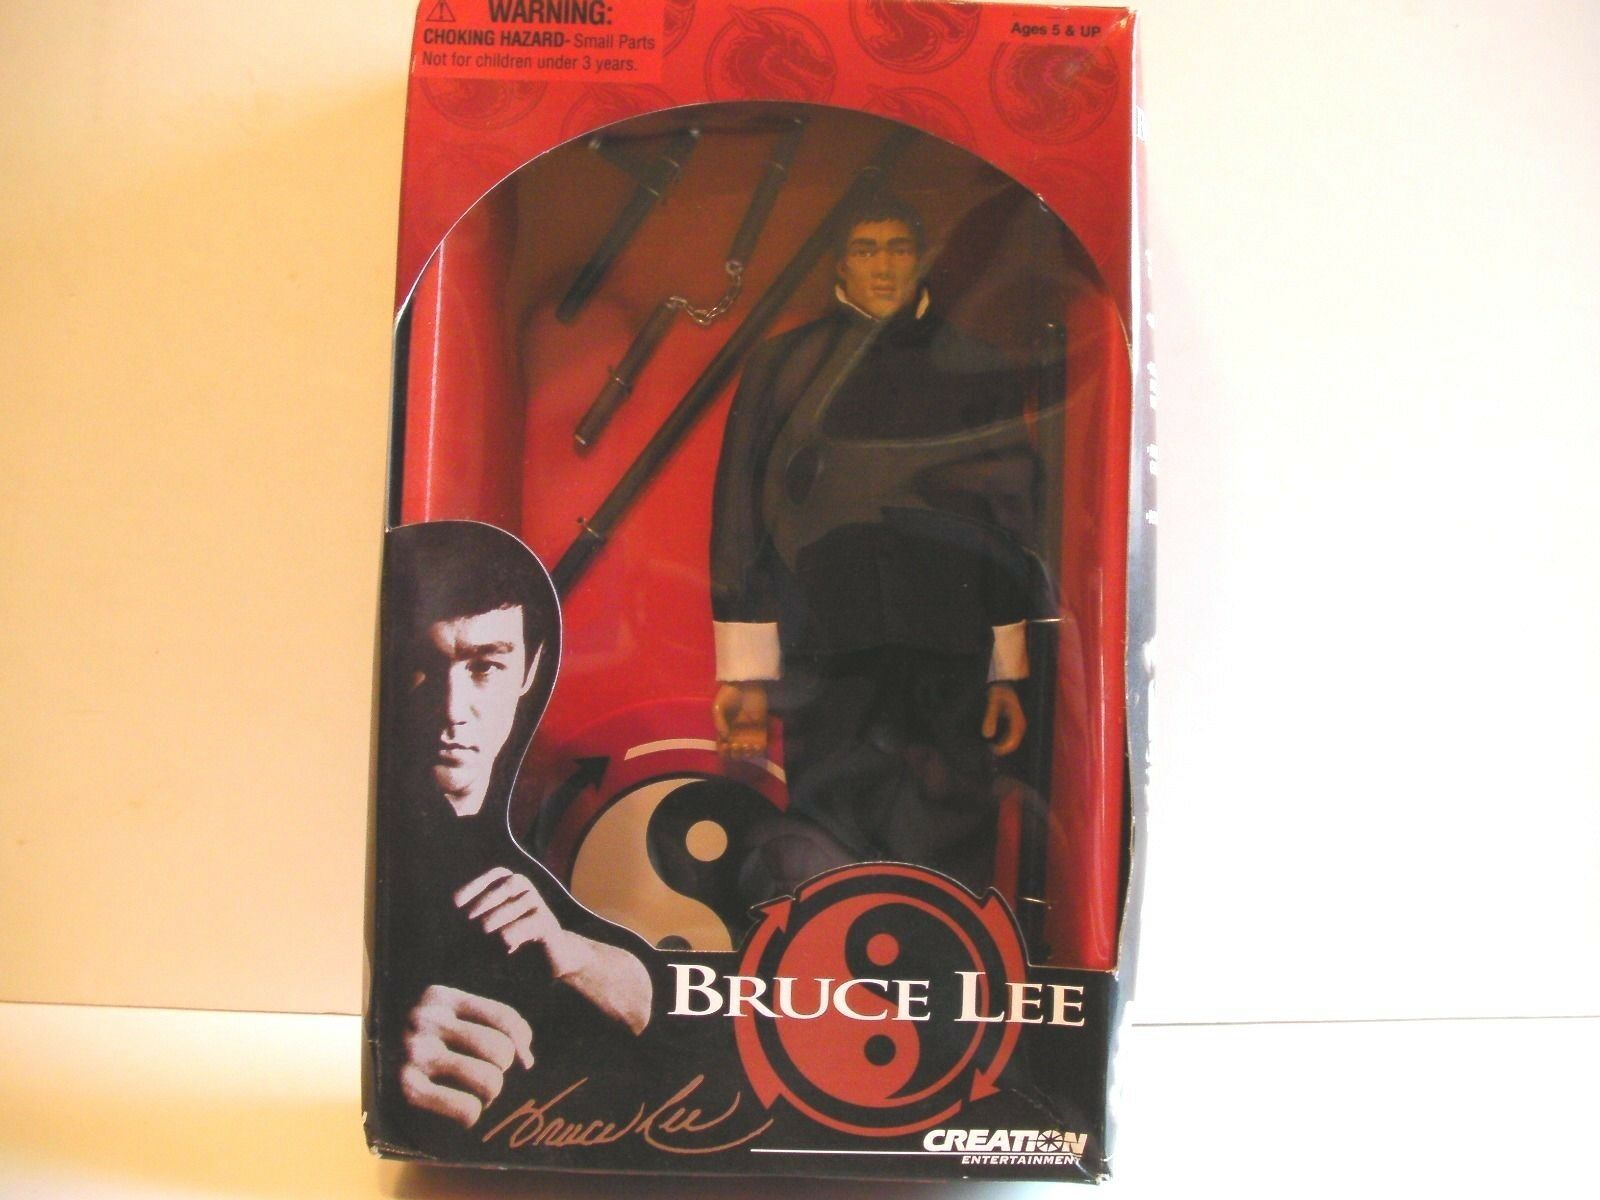 Bruce Lee 1999 Creation Entertainment 12  Figure NEW BLK GI  FREE SHIP/GIFT